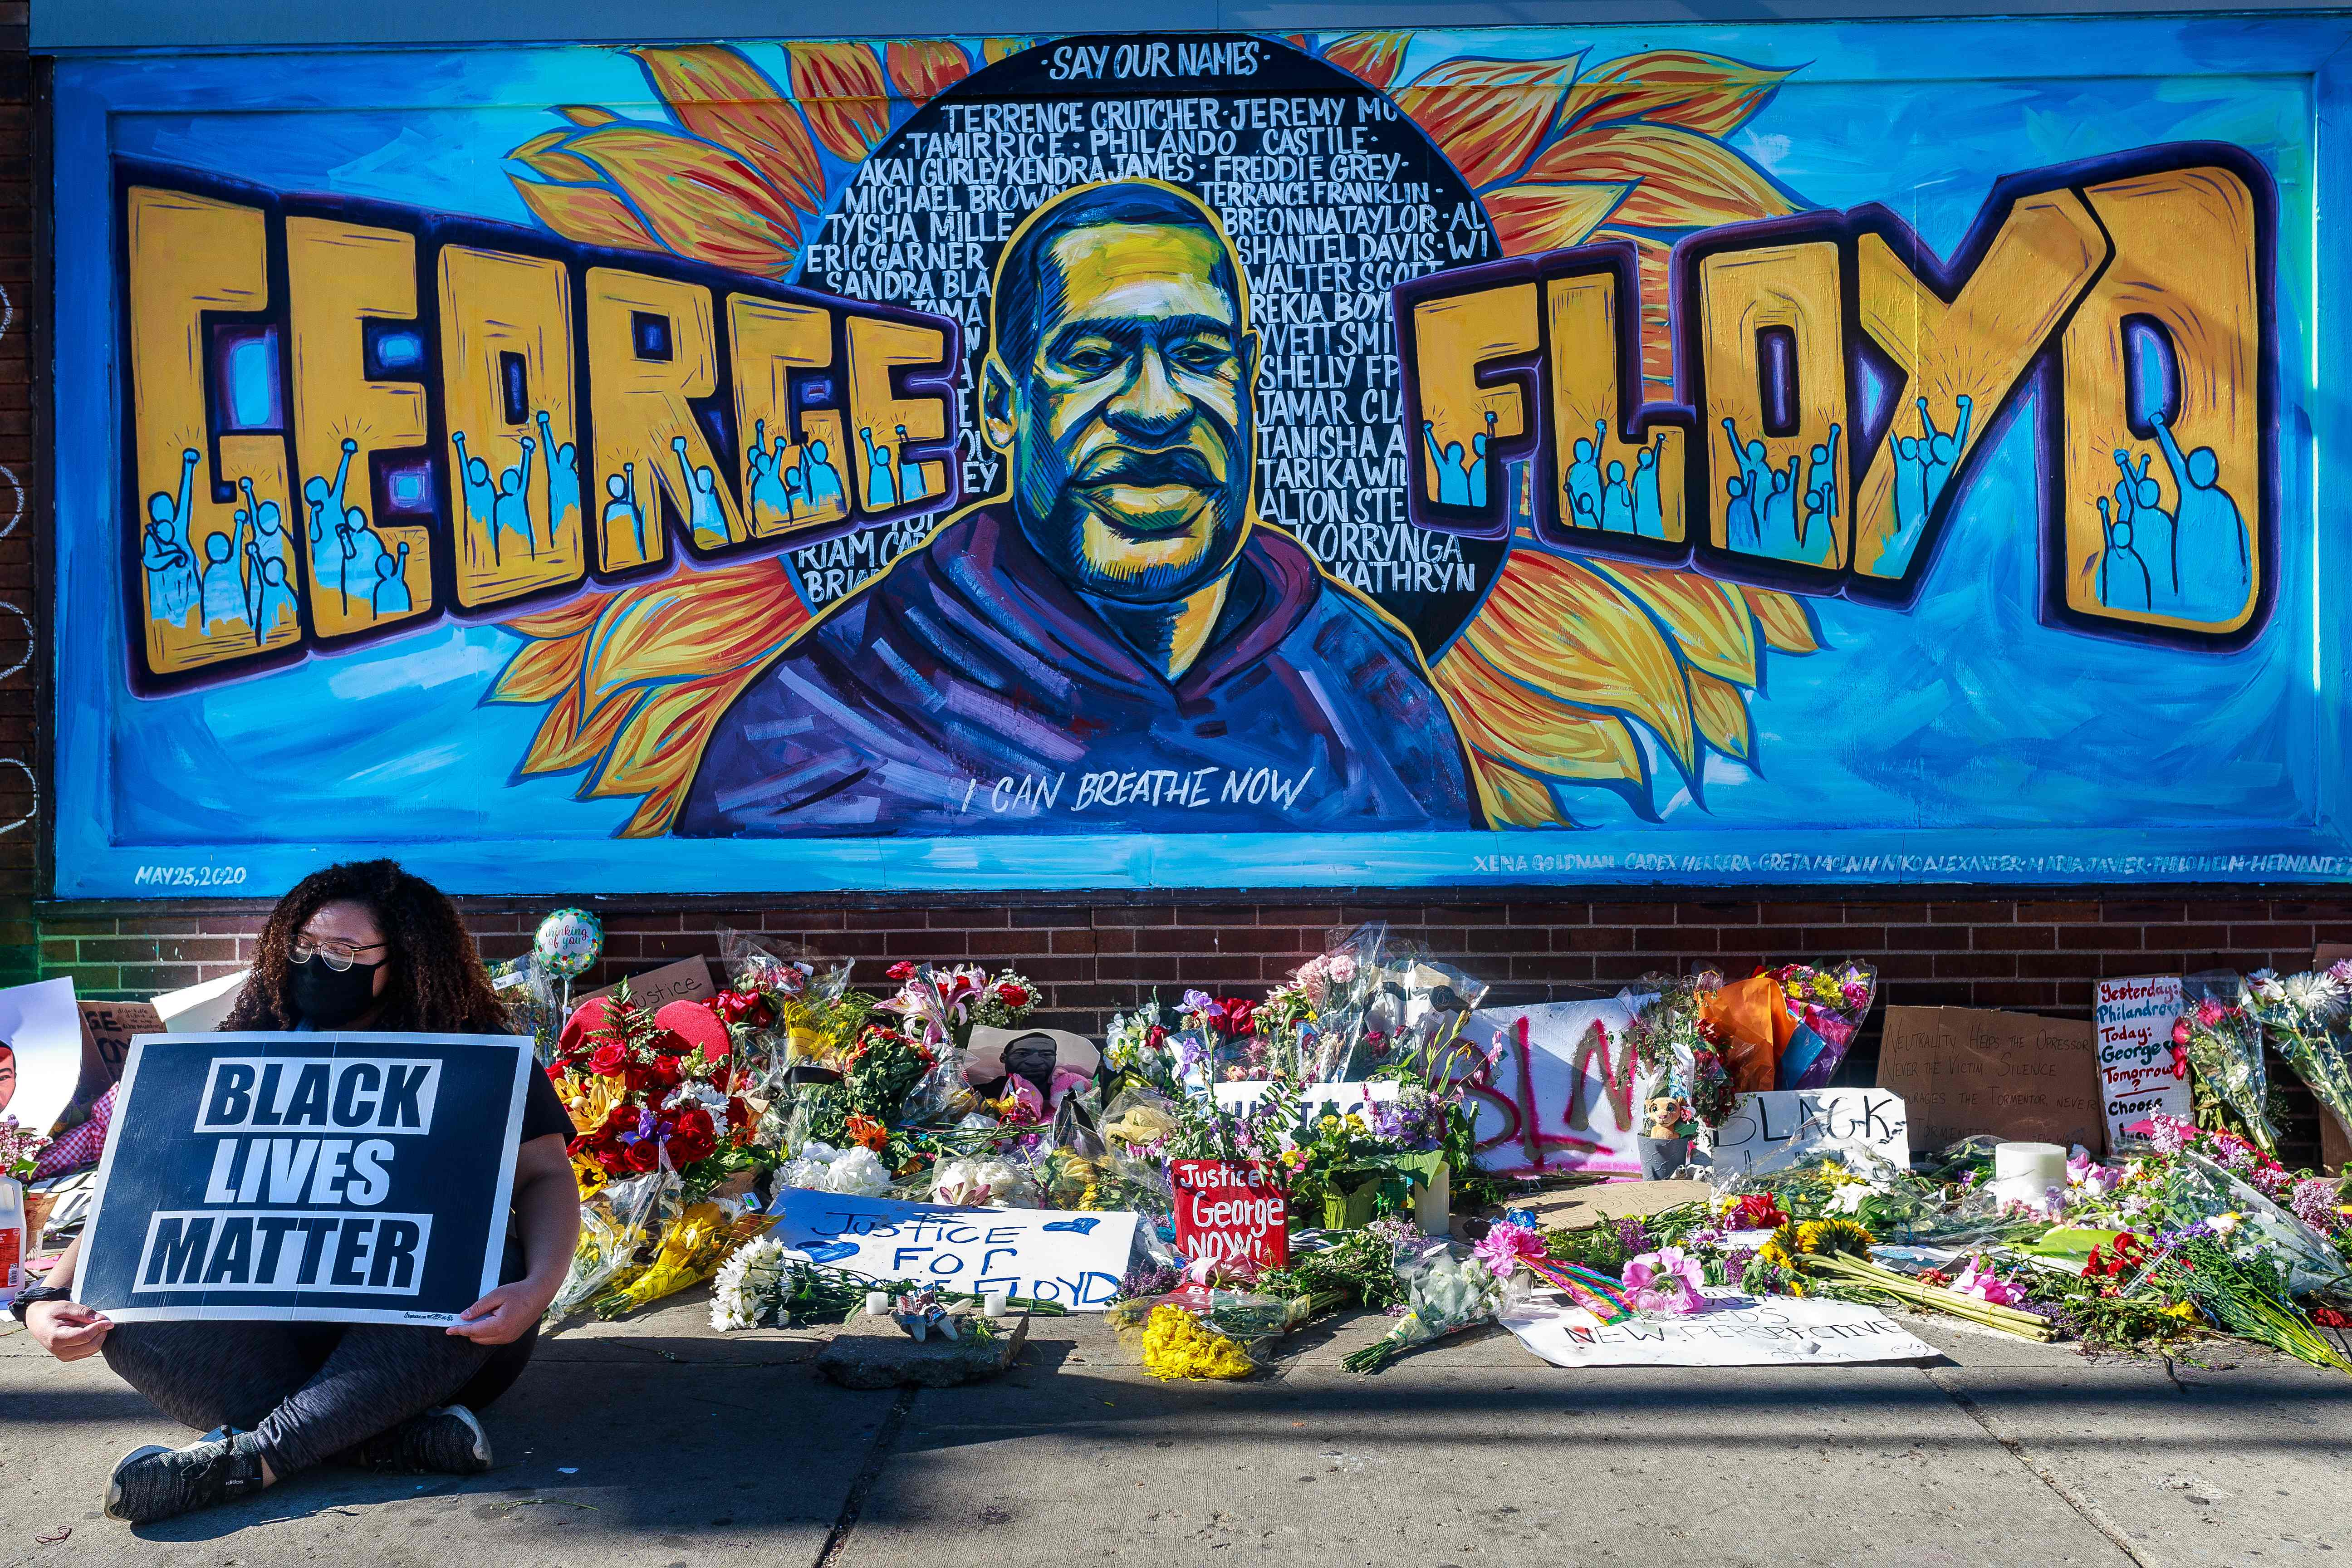 Flowers, signs and balloons are left near a makeshift memorial to George Floyd near the spot where he died while in custody of the Minneapolis police, on May 29, 2020 in Minneapolis, Minnesota. - Demonstrations are being held across the US after George Floyd died in police custody on May 25.